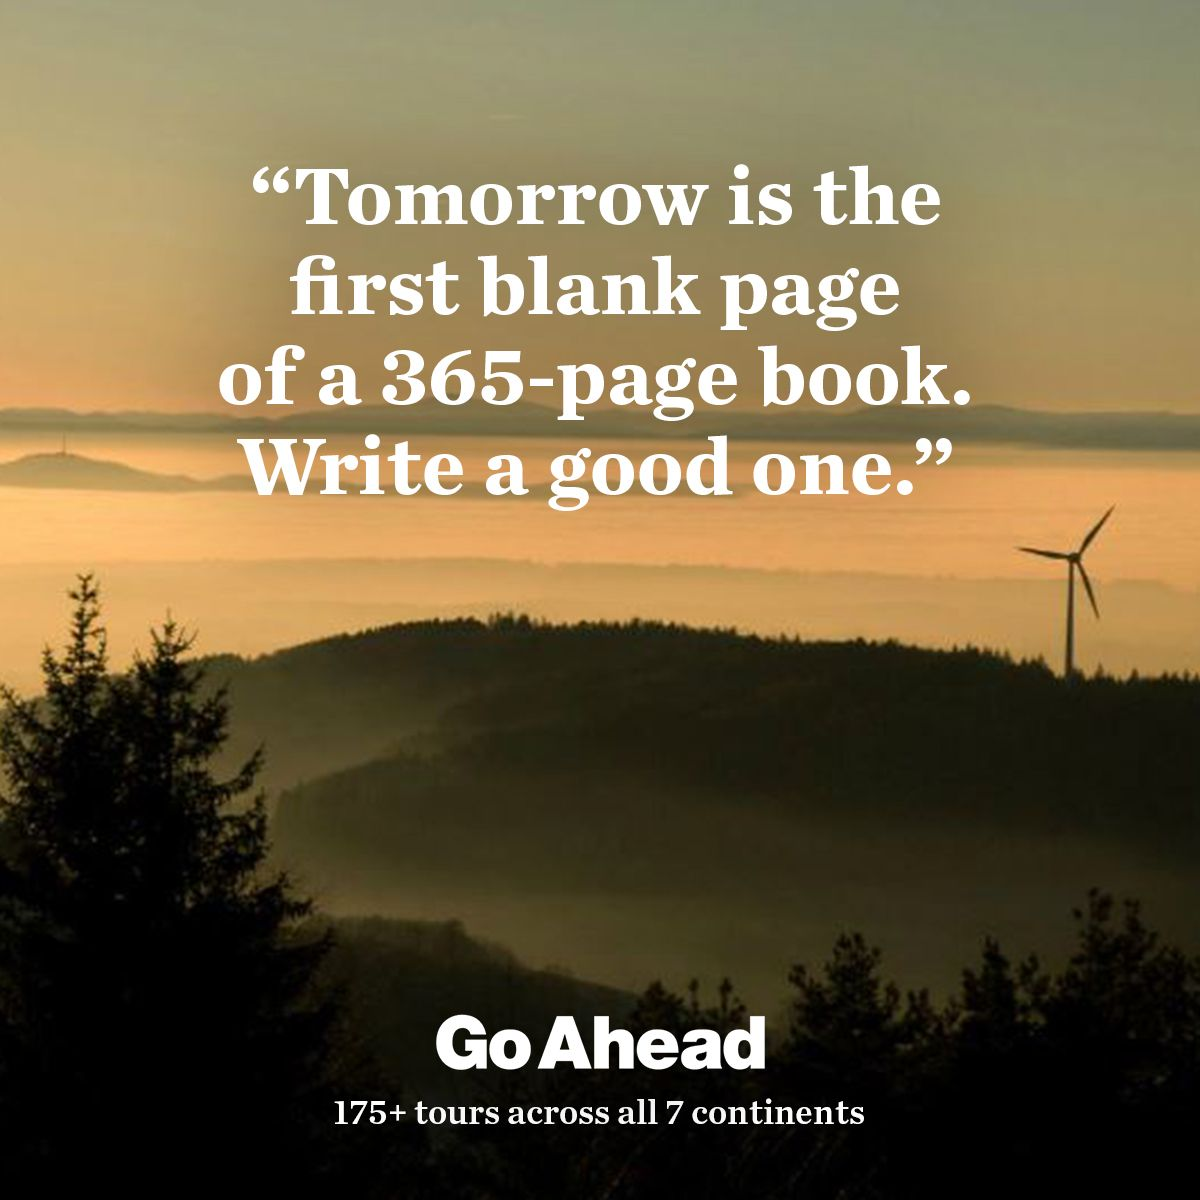 Inspiring Travel and New Years Quote from Go Ahead Tours